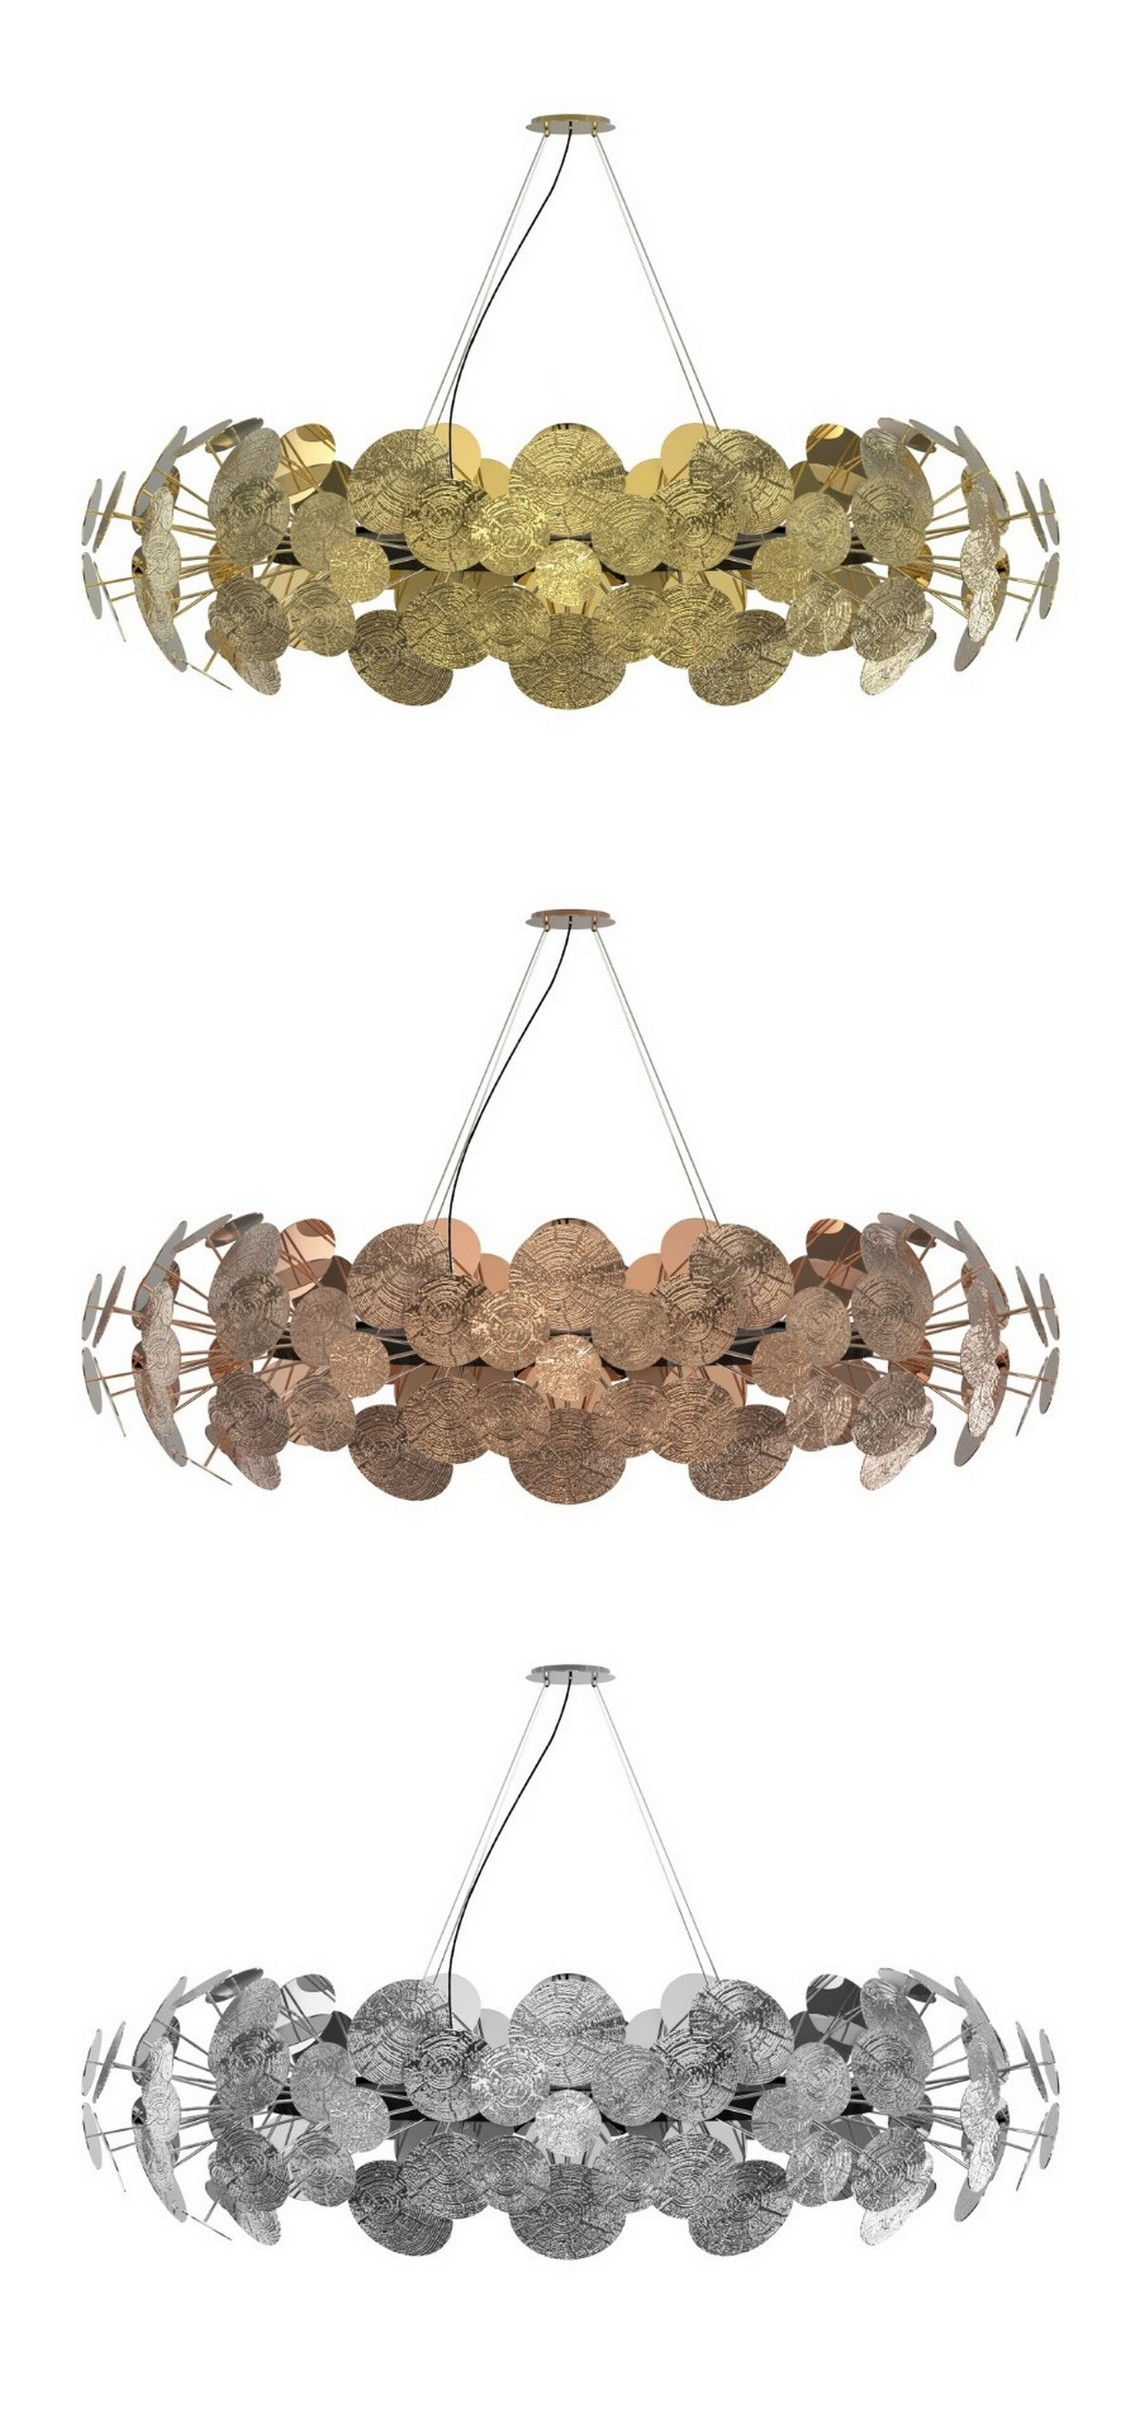 7 Luxury Chandeliers You Will Love luxury chandeliers 7 Luxury Chandeliers You Will Love newton2